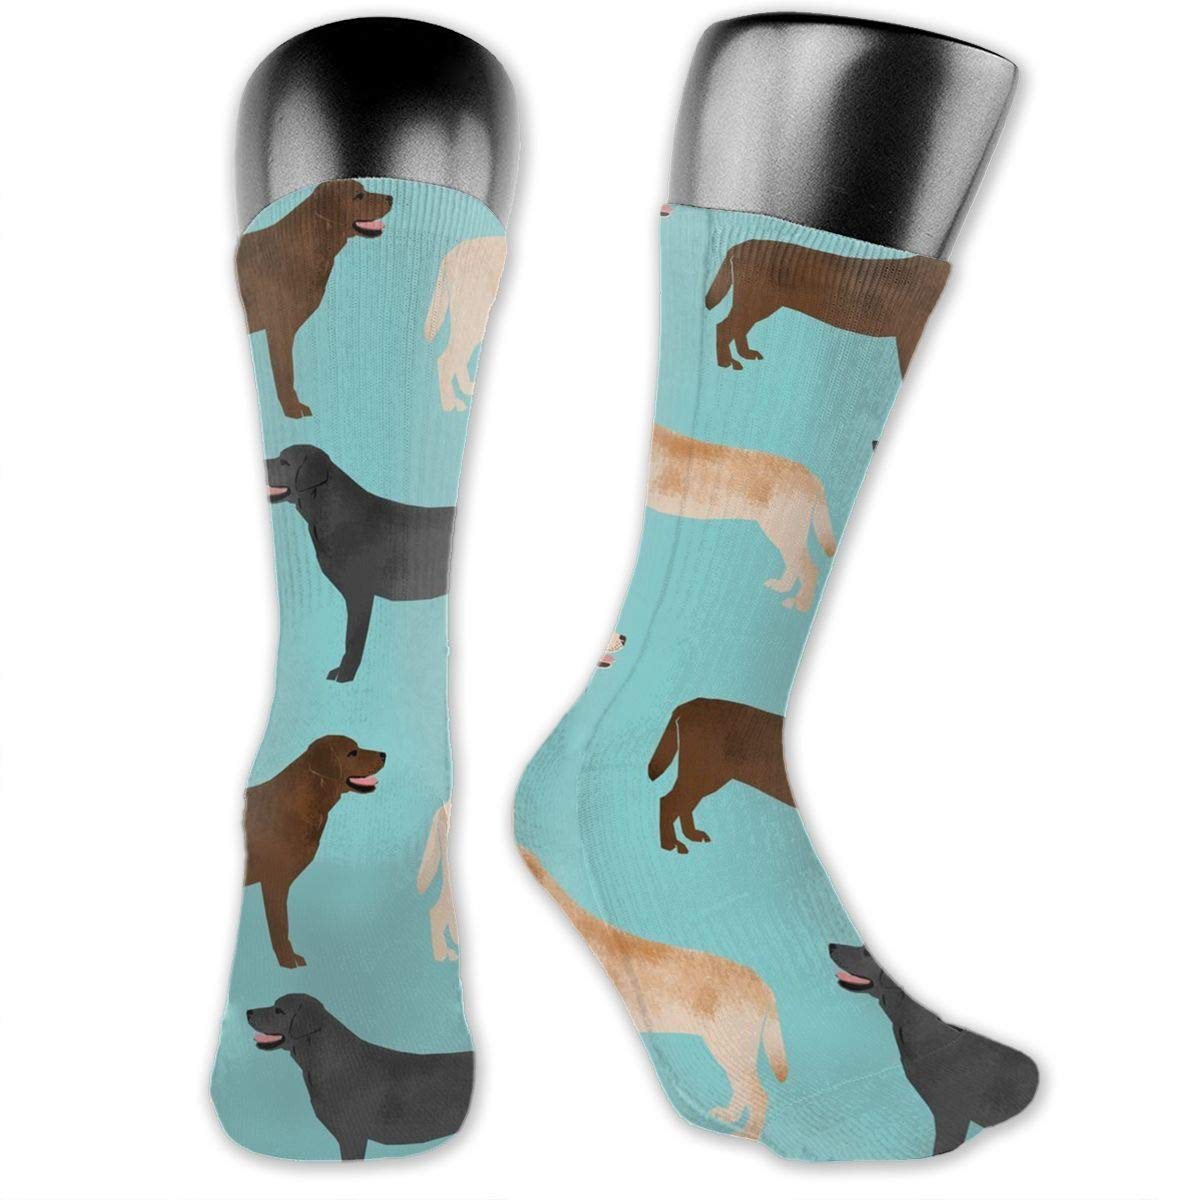 Unisex Cute Puppy Playing Dogs Athletic Quarter Ankle Print Breathable Hiking Running Socks